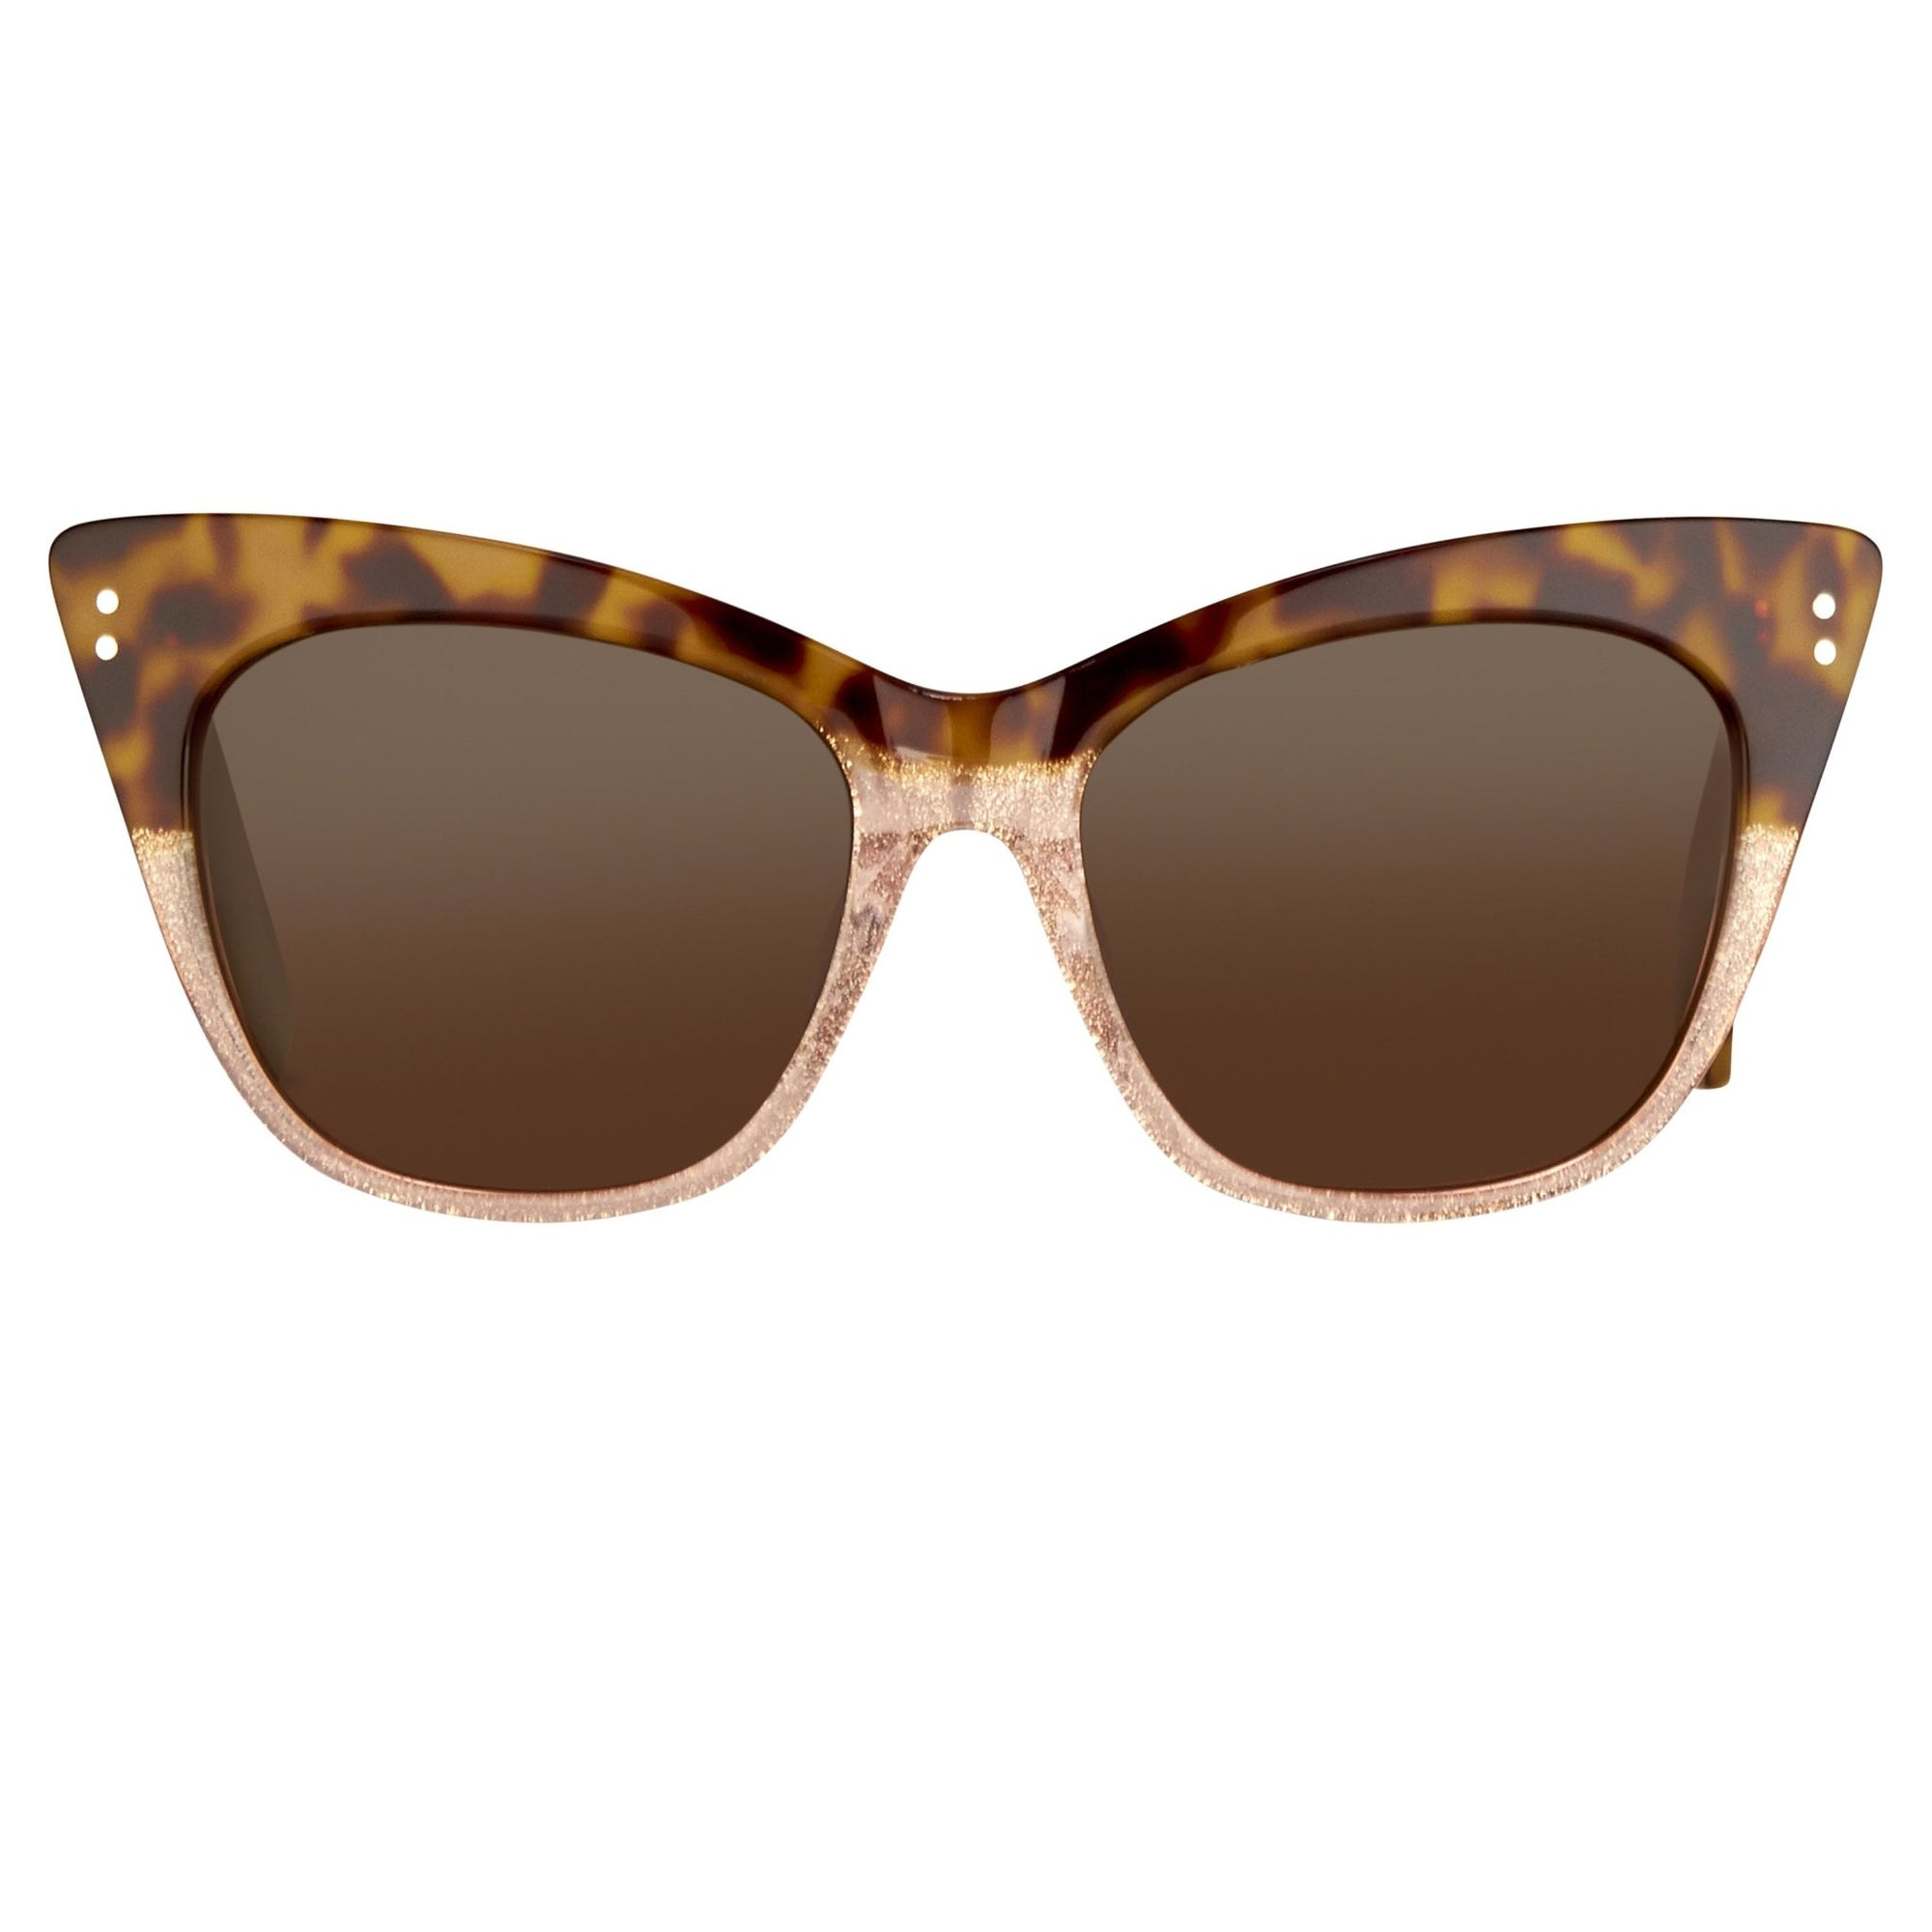 Erdem Women Sunglasses Cat Eye Tortoise Shell Rose Glitter with Brown Lenses Category 3 EDM22C1SUN - Watches & Crystals